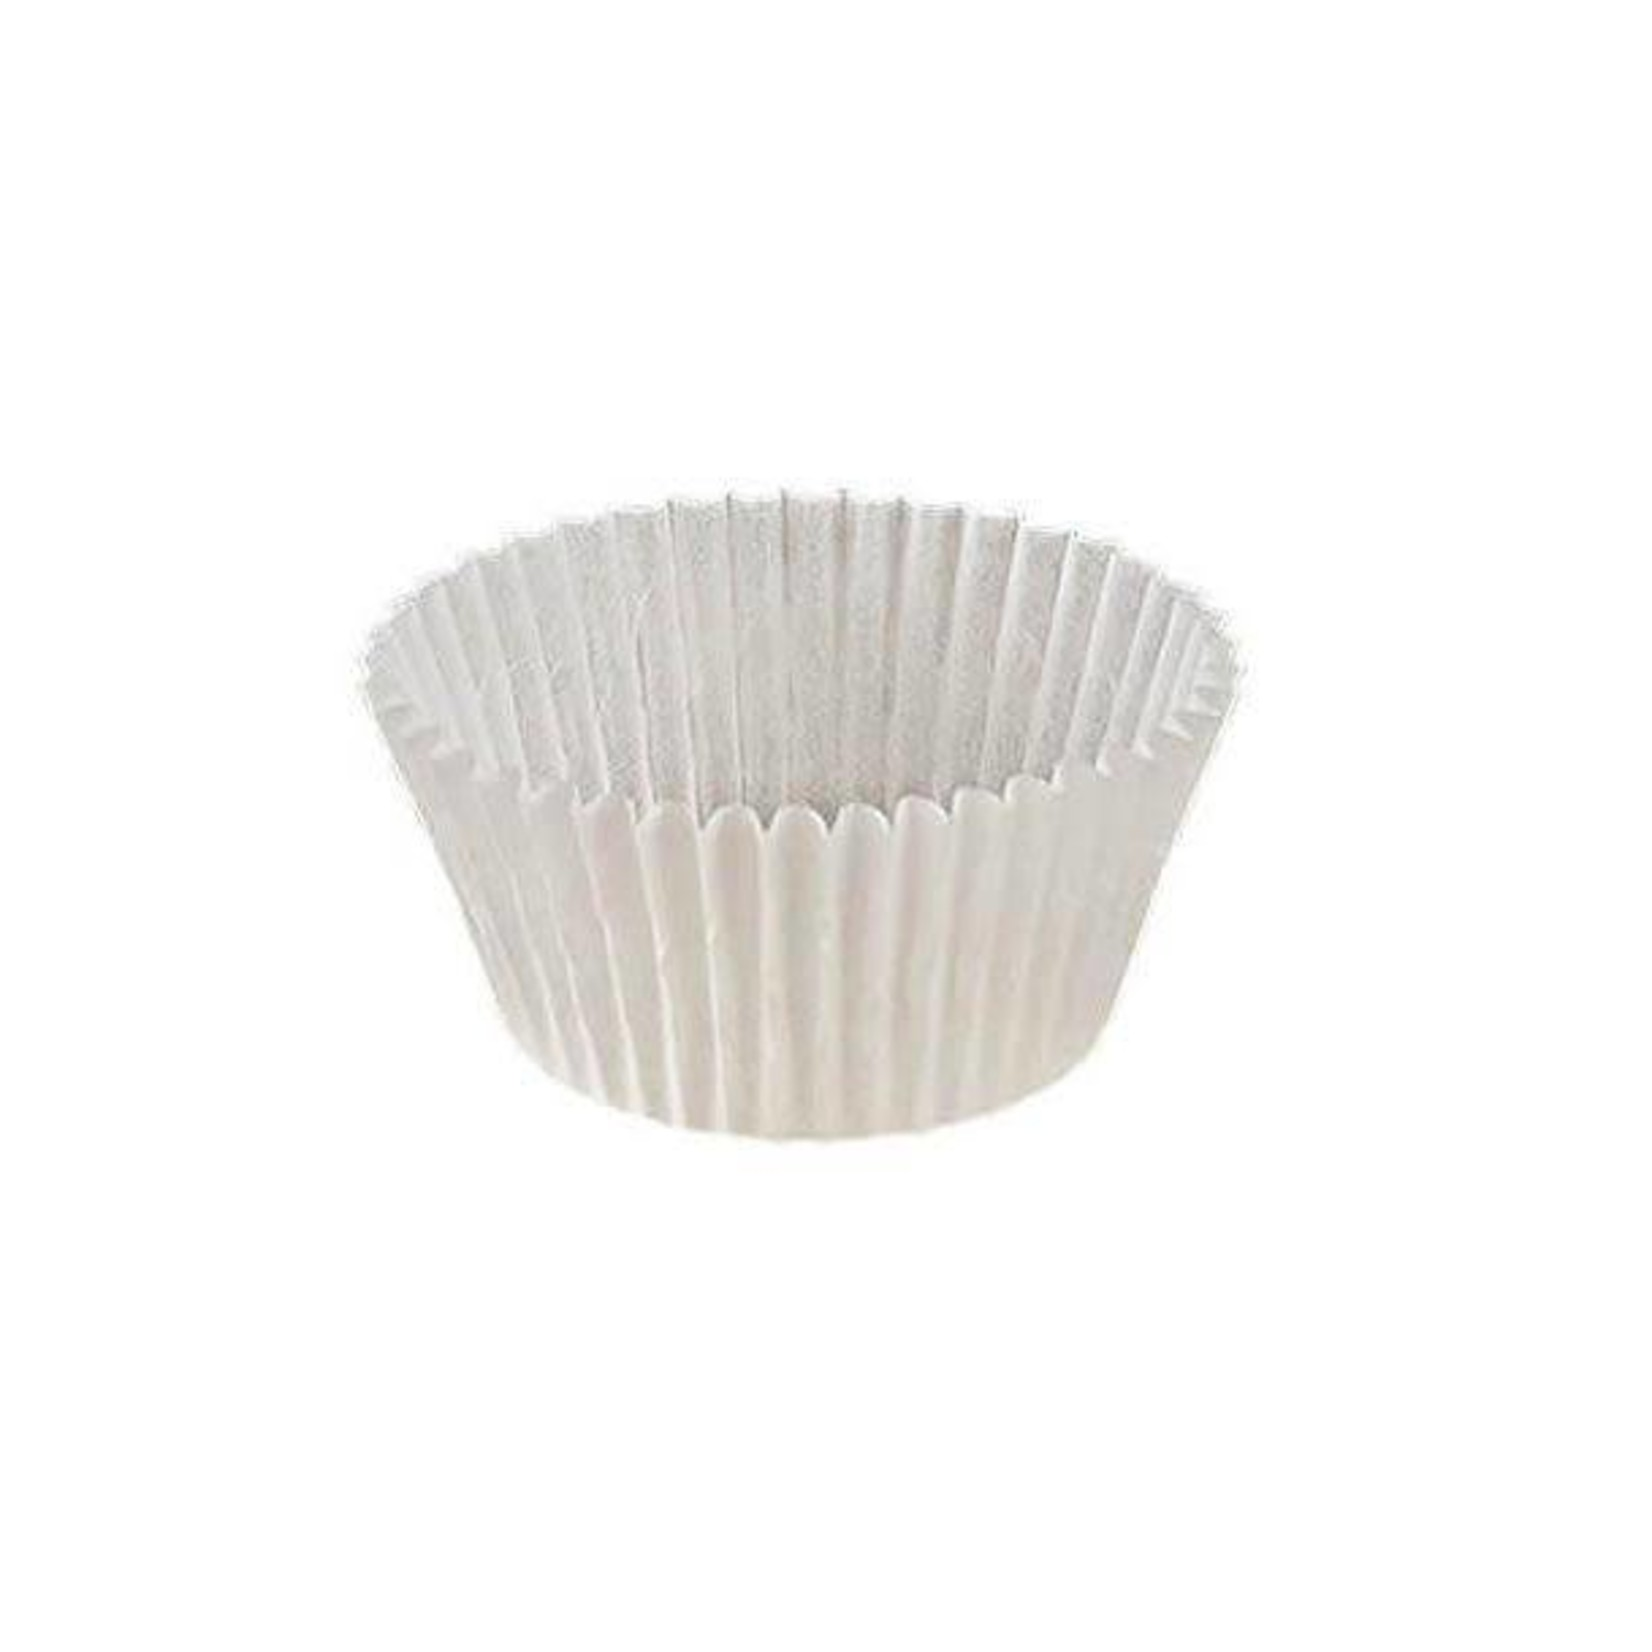 CK White Candy Cup #4 - 1 lb bag